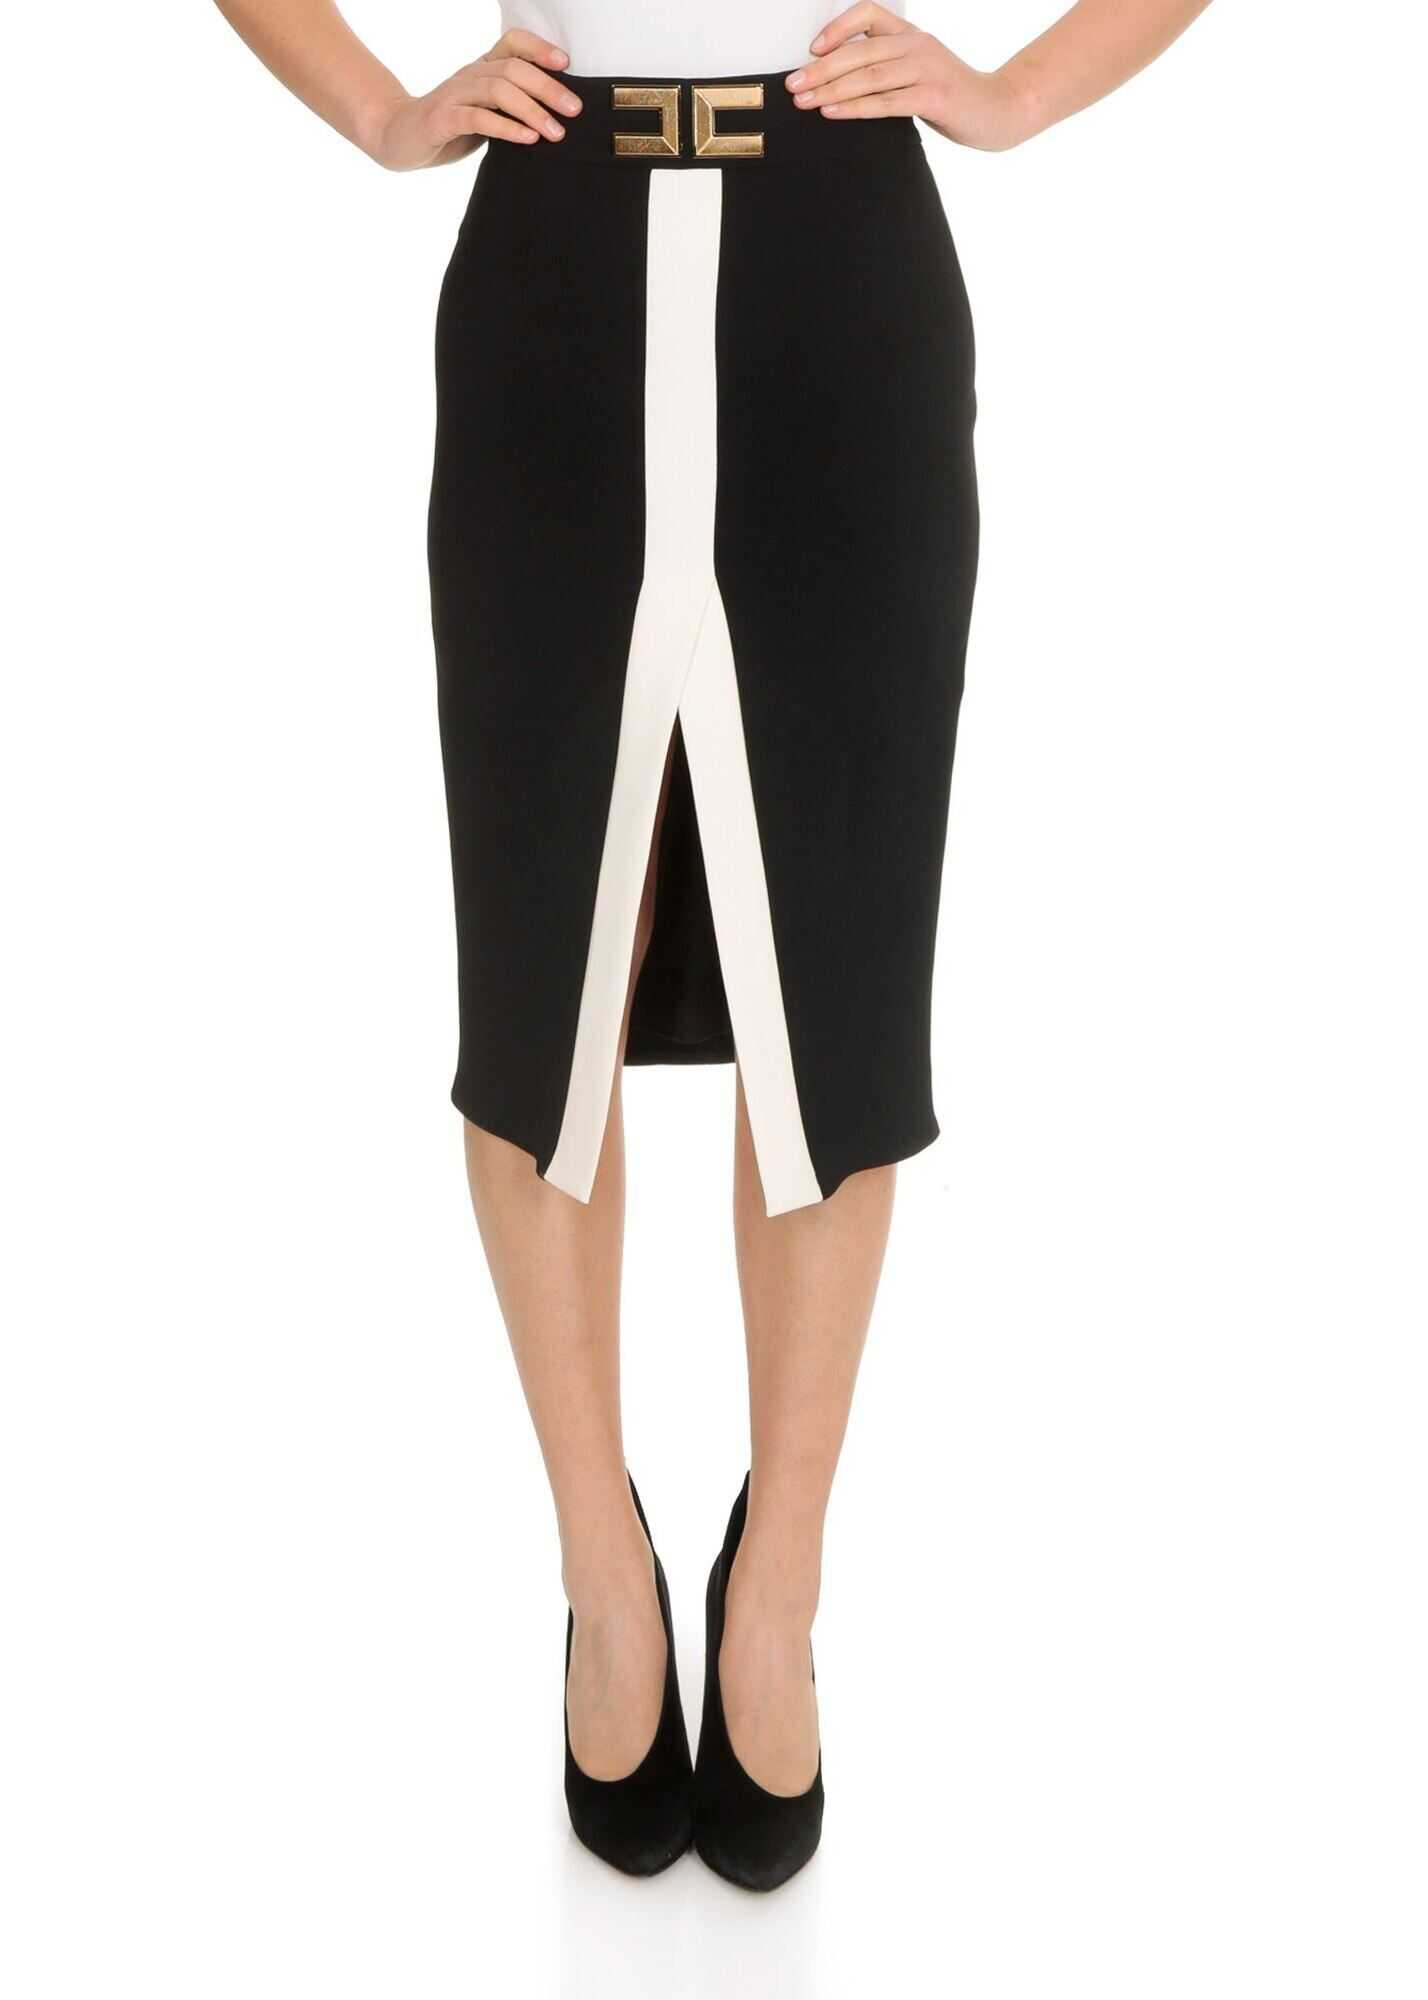 Elisabetta Franchi Longuette In Black And White With Logo Black